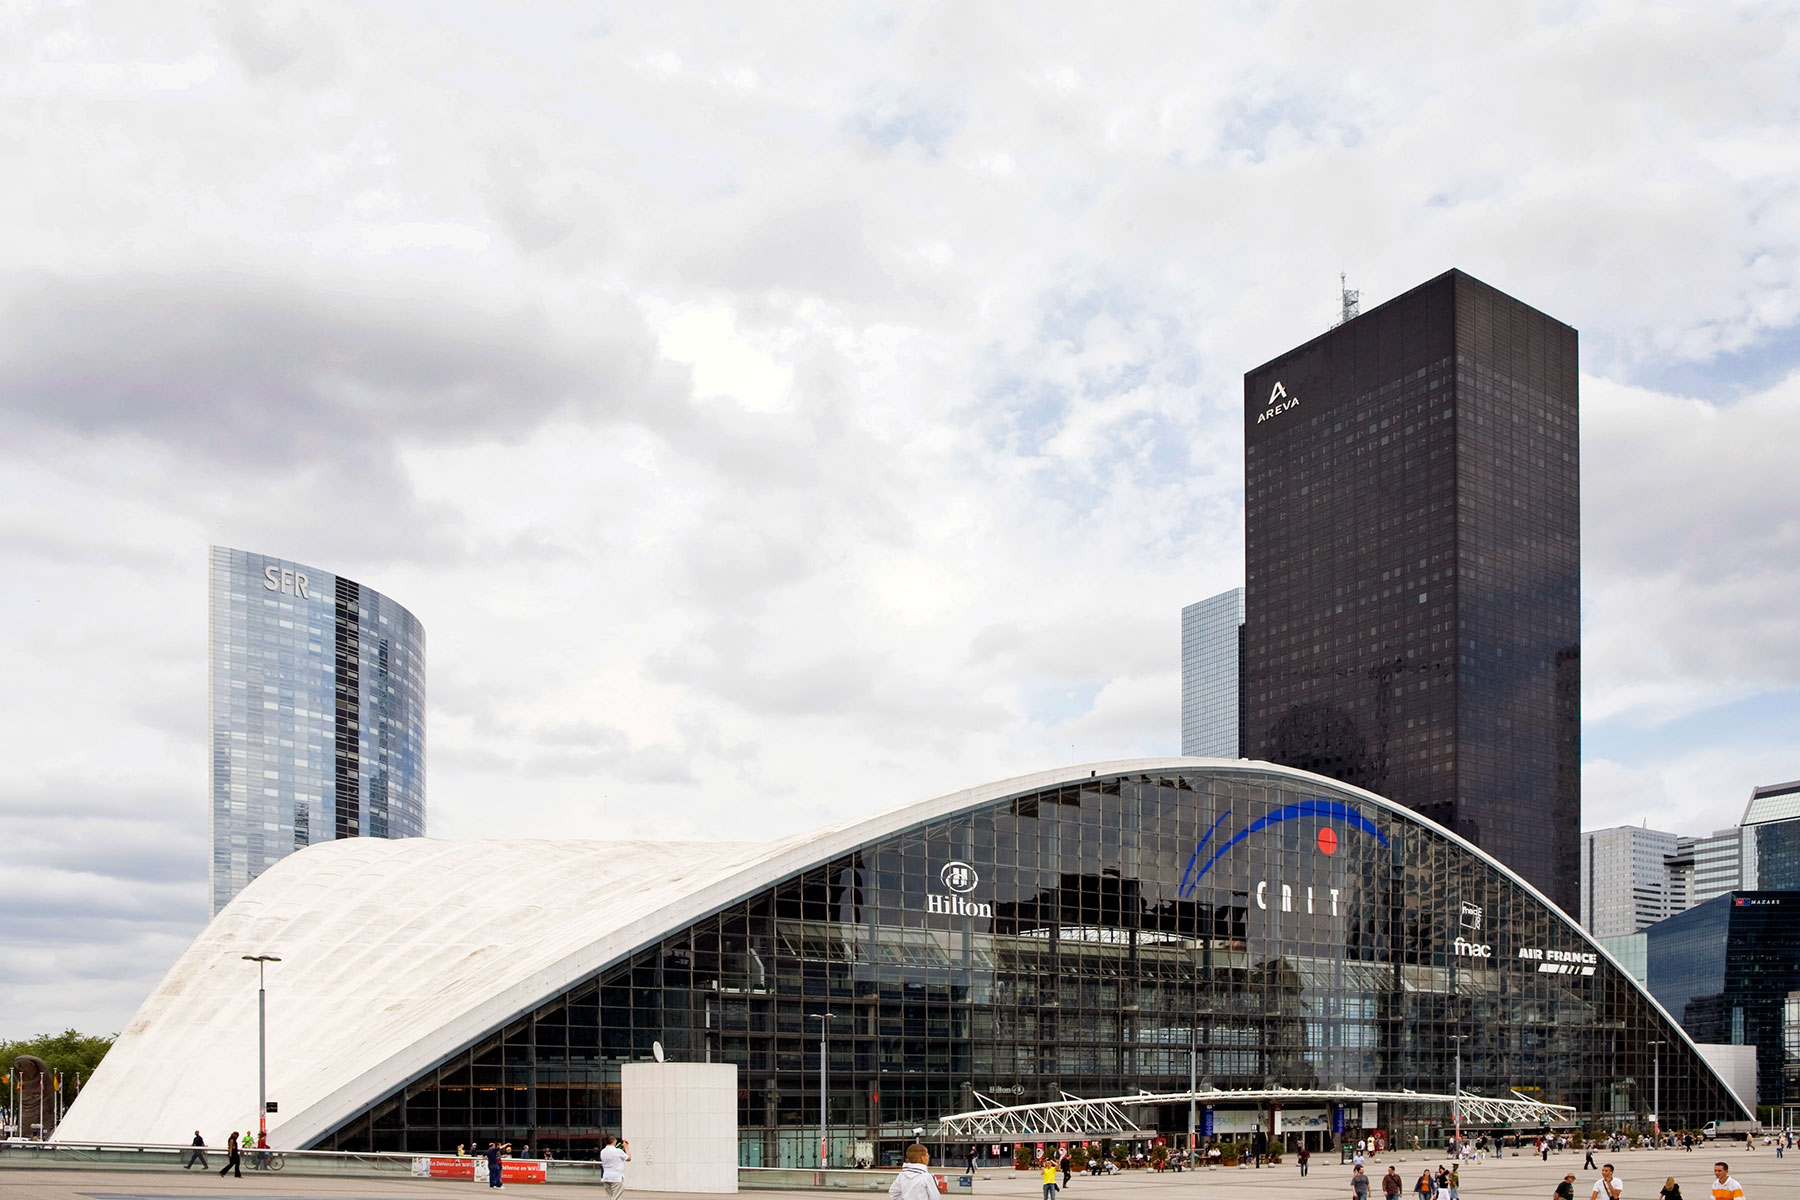 CFD_LaDefense_CNIT-1